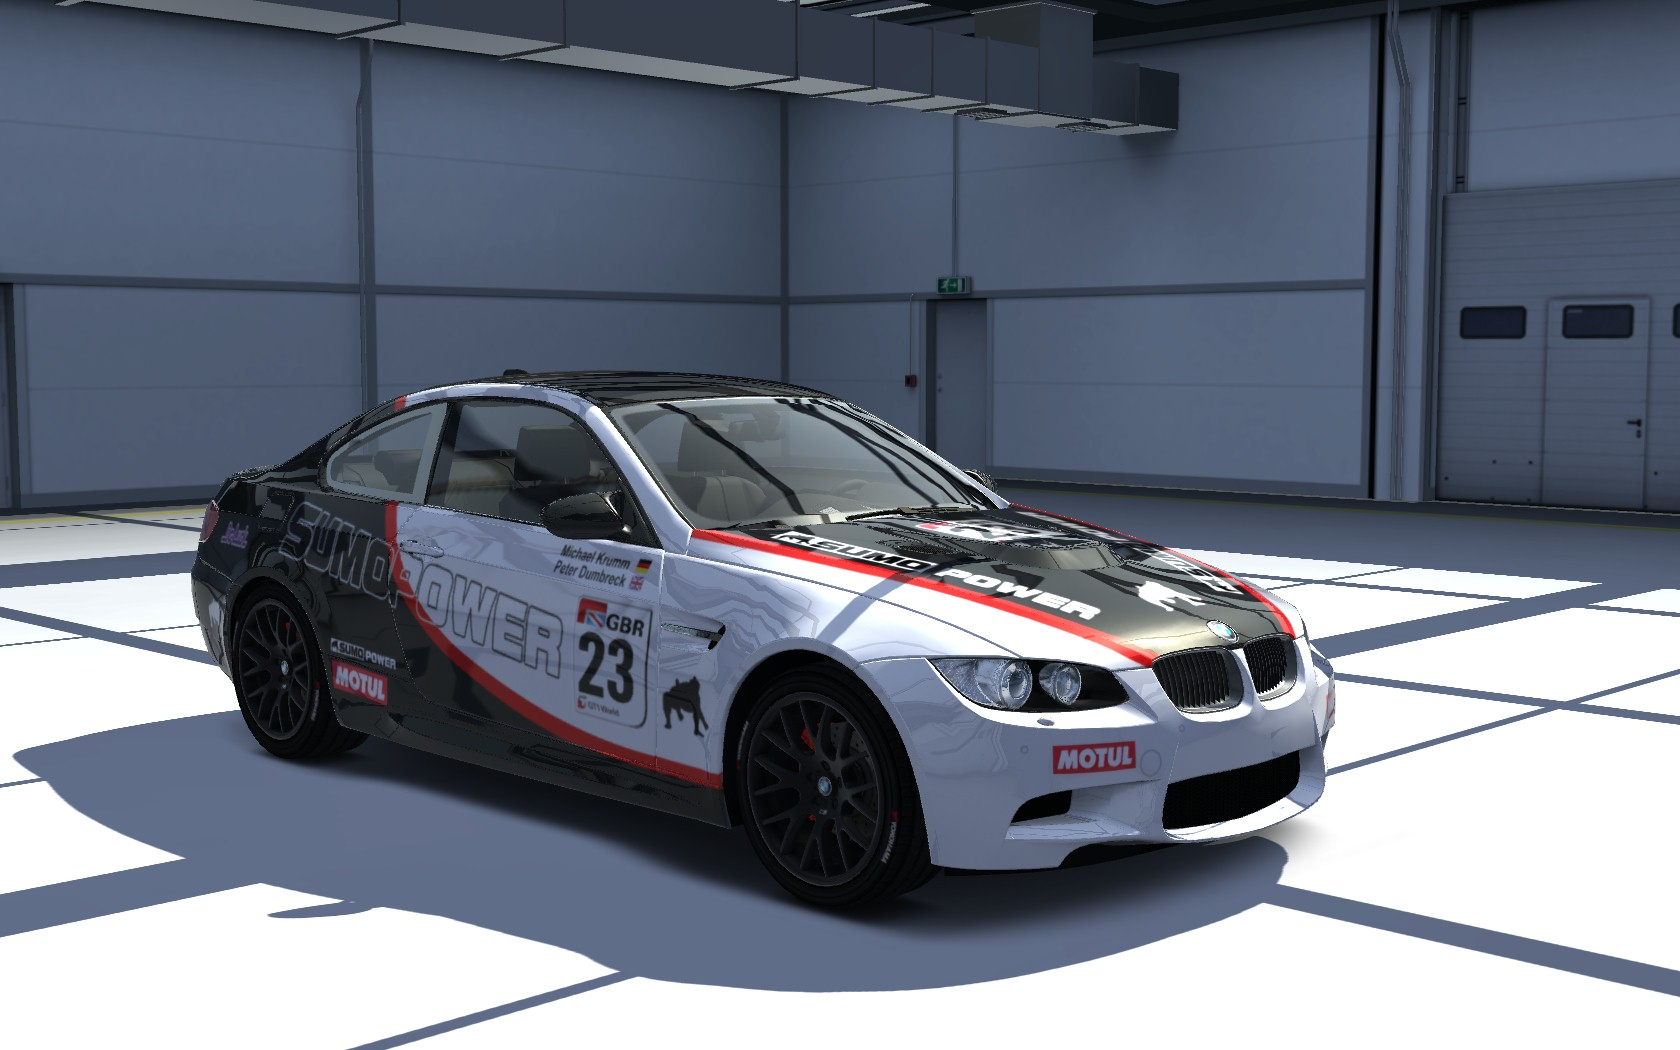 Showroom_bmw_m3_e92_drift_4-12-2013-2-5-11.jpg